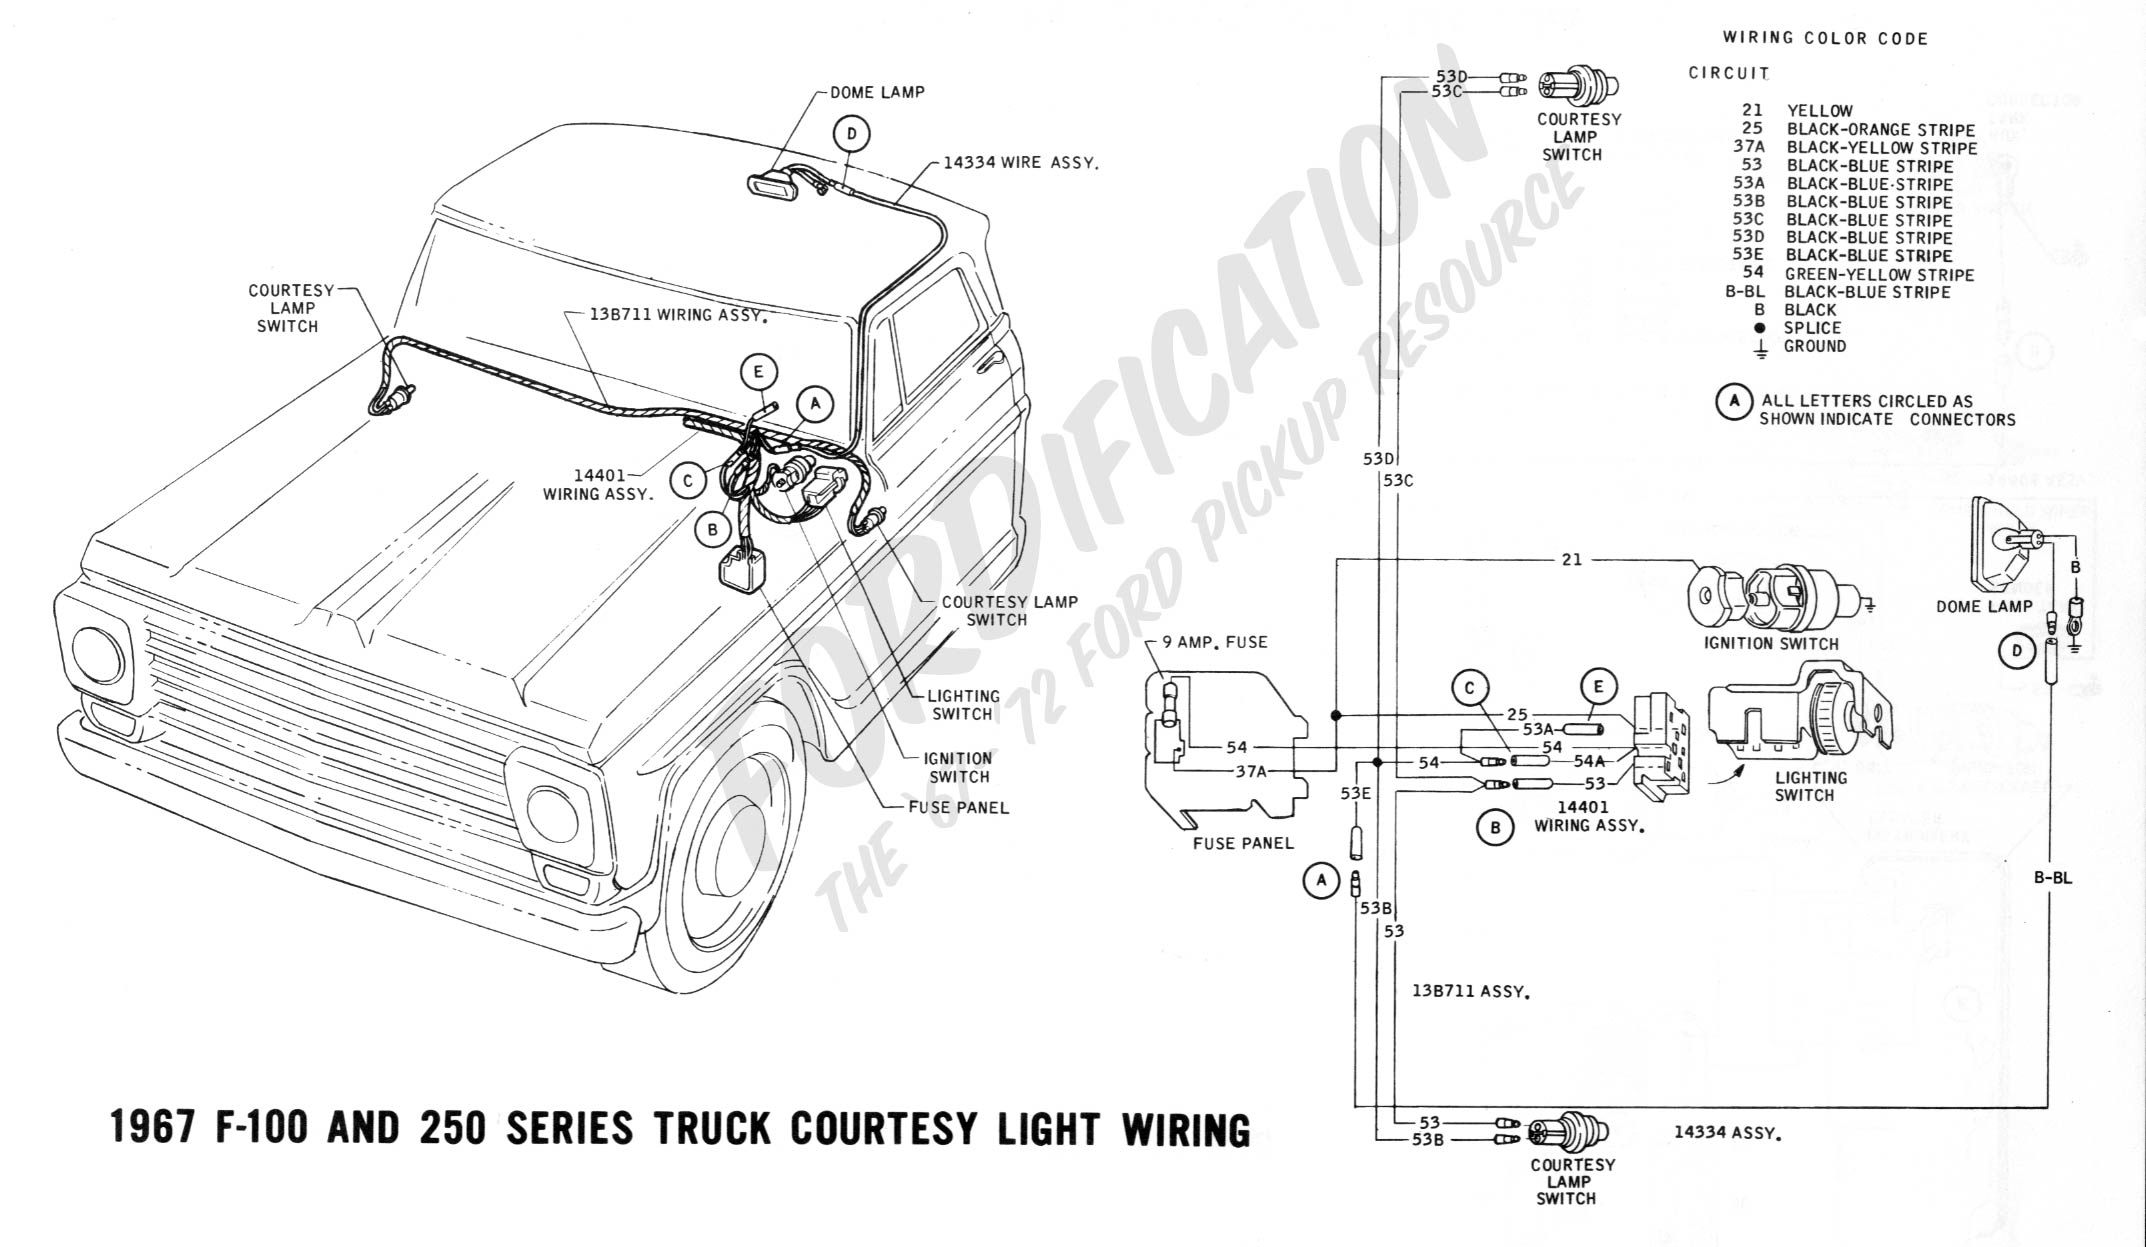 1967 ford f150 wiring diagram block and schematic diagrams \u2022 86 ford f-150 wiring diagram ford truck technical drawings and schematics section h wiring rh fordification com ford f 150 radio wiring diagram 1997 ford f 150 wiring diagram